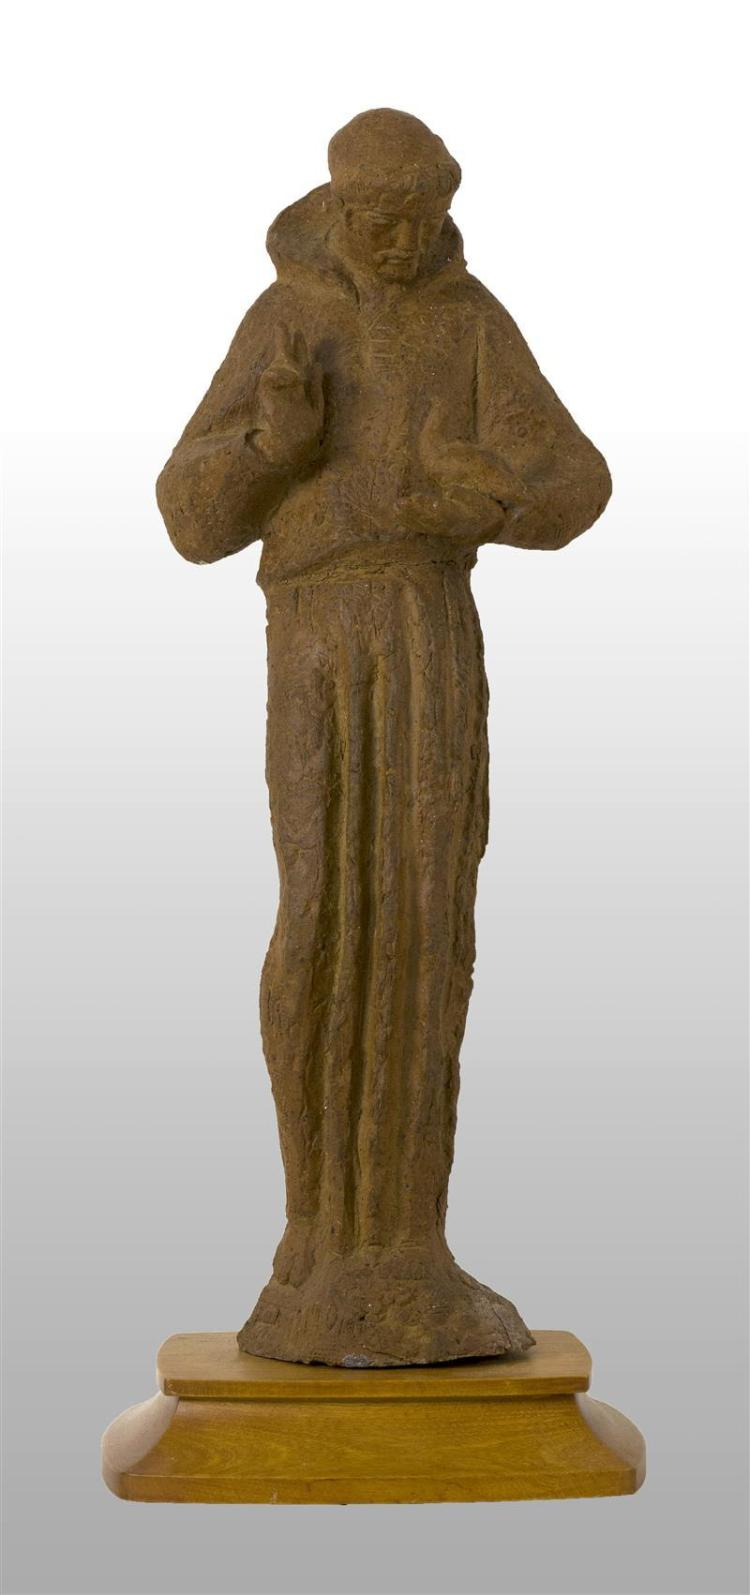 """ARNOLD GEISSBUHLER, Massachusetts, 1897-1993, Saint Francis holding a bird., Red clay sculpture, height 24.75"""". Includes wooden stand."""